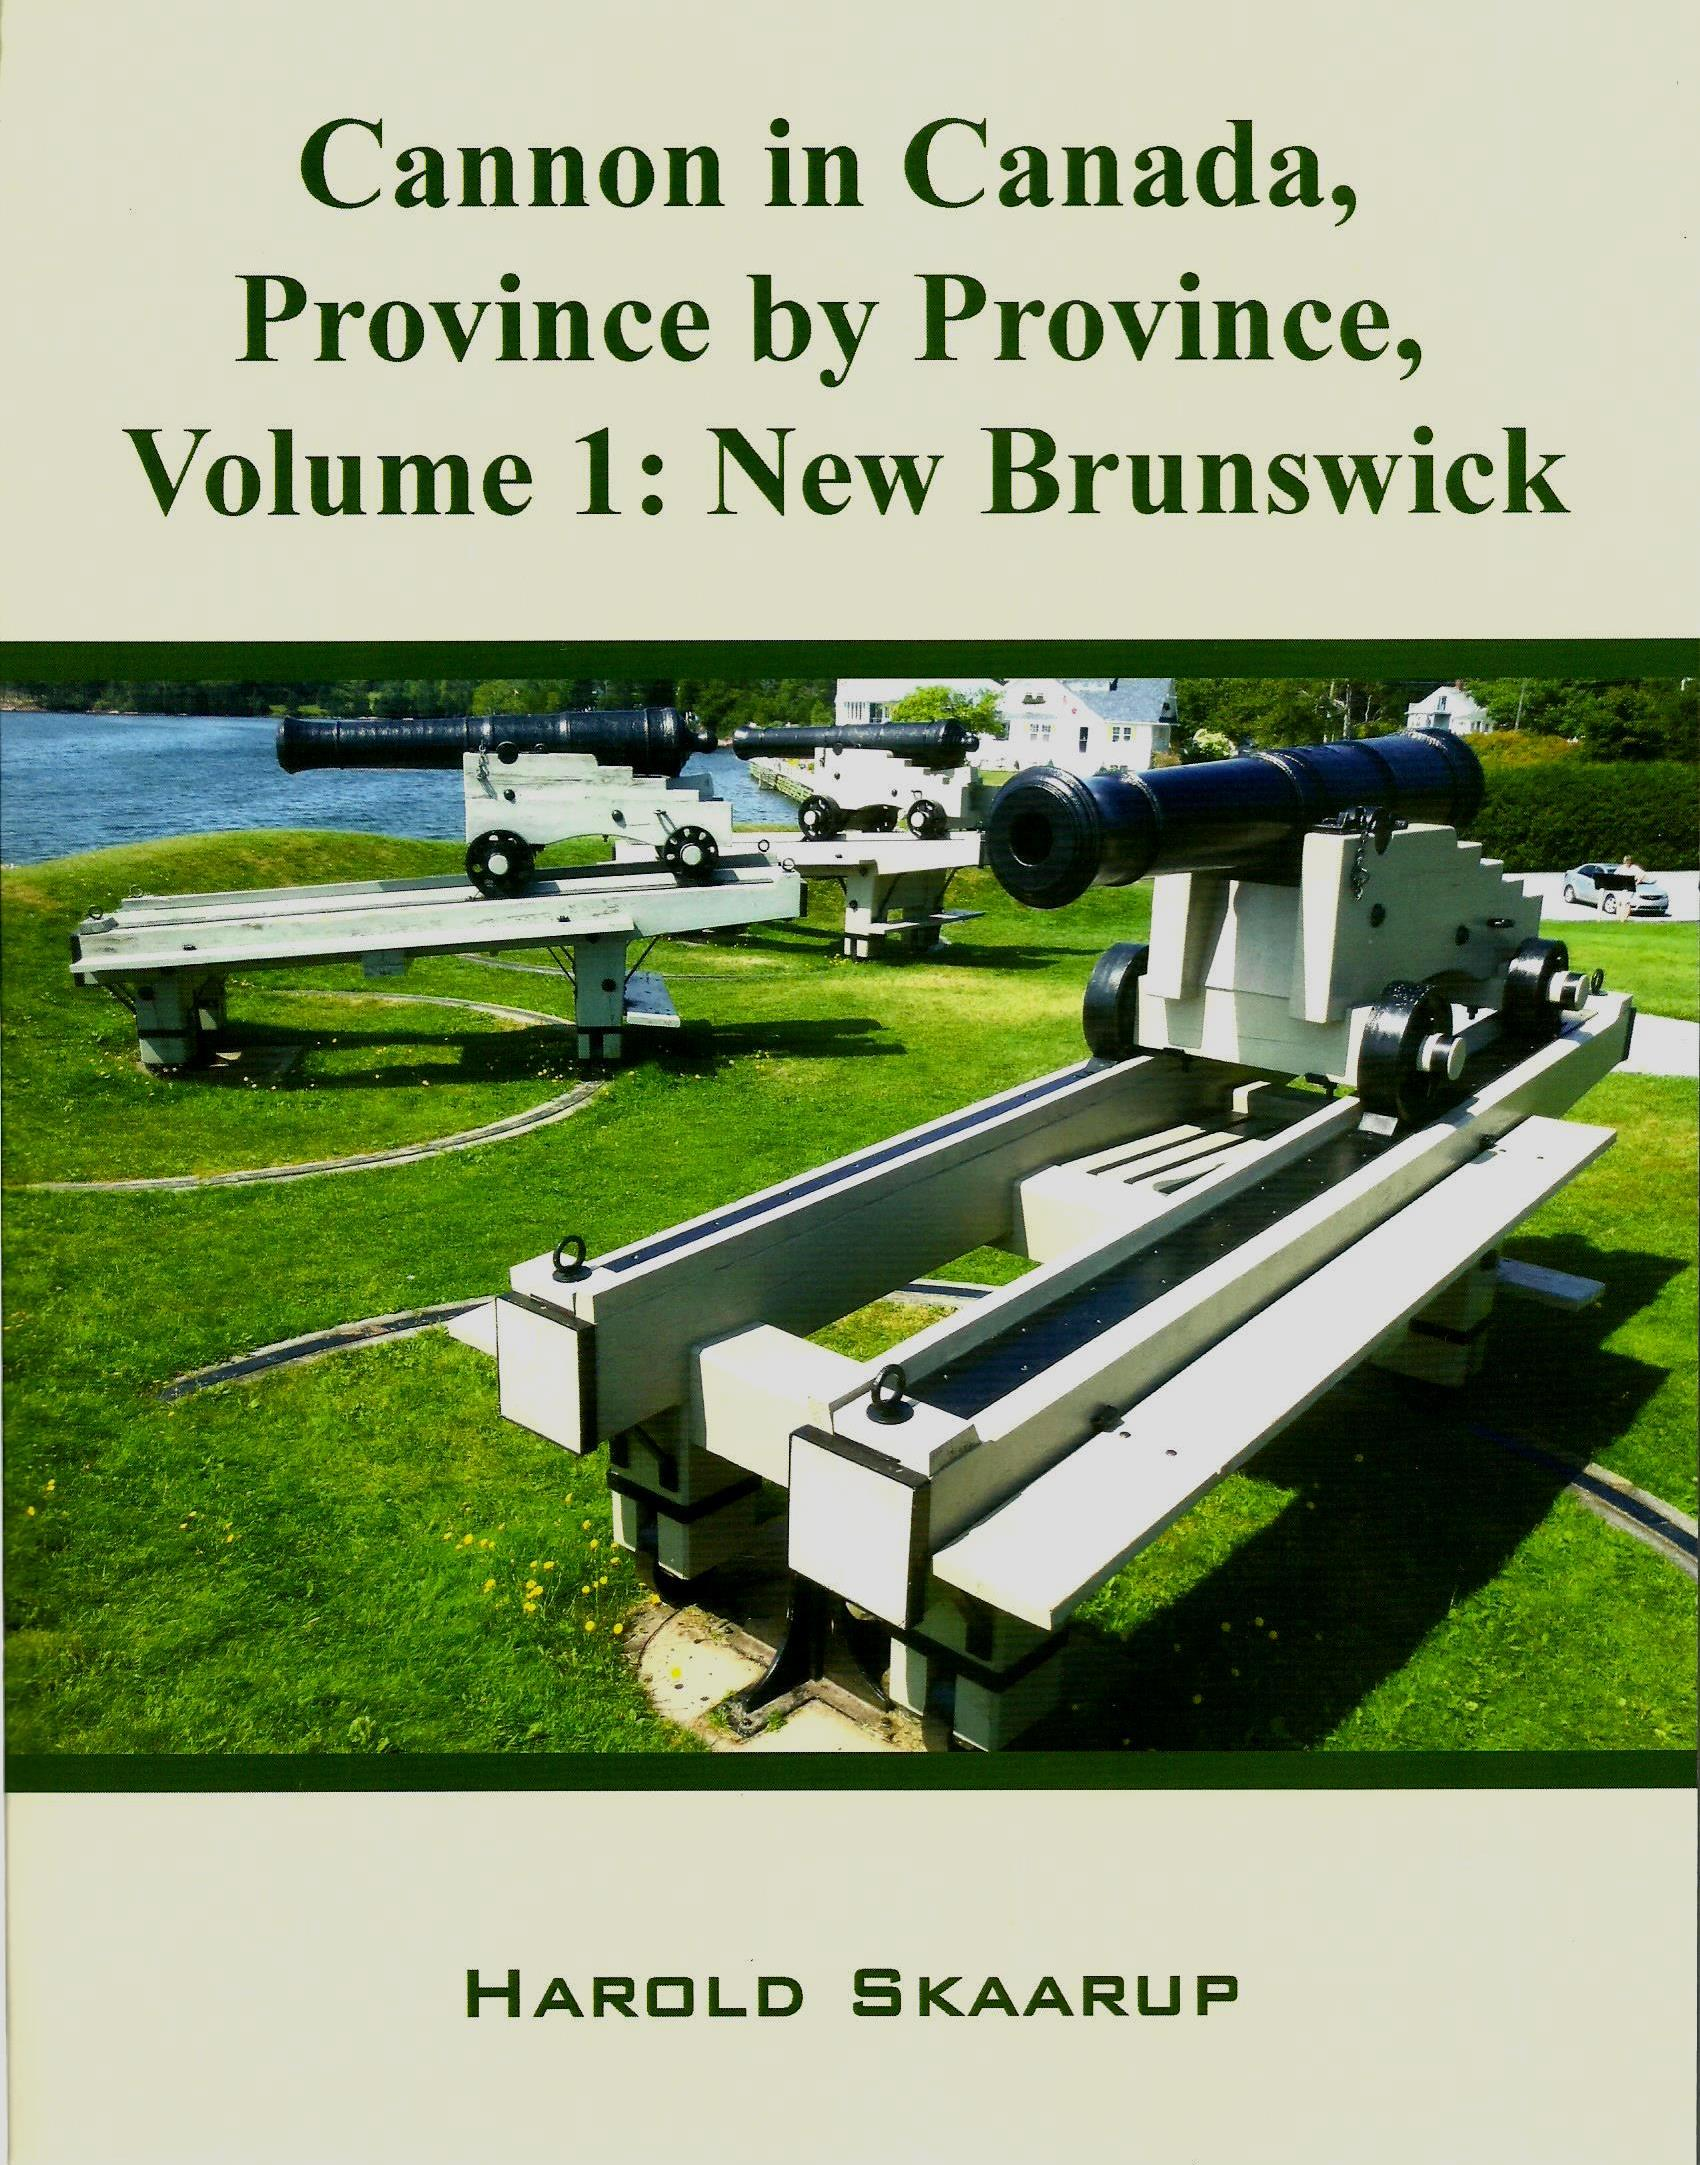 Cannon in Canada, Province by Province, Volume 1: New Brunswick